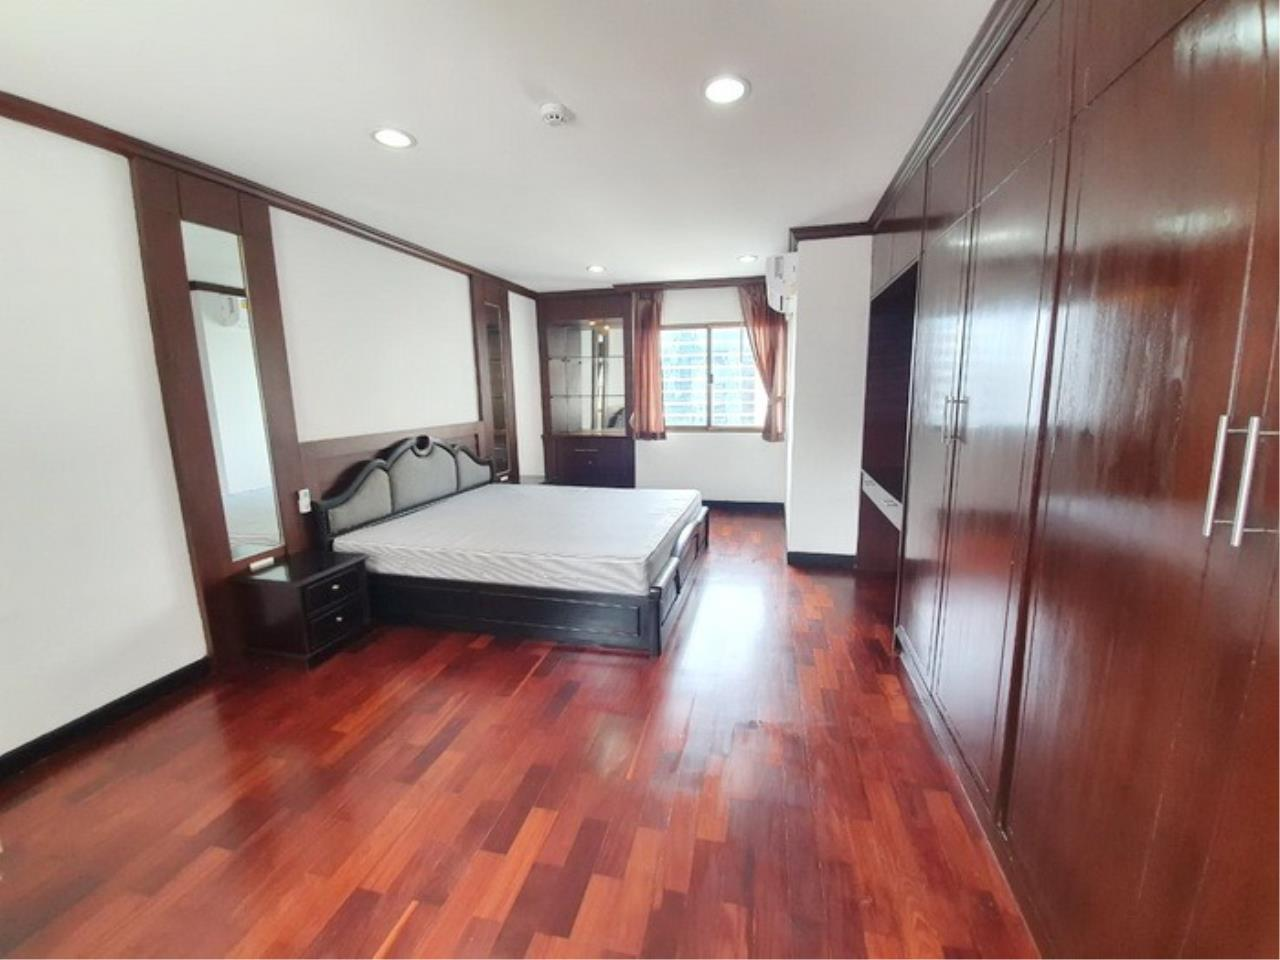 Bestbkkcondos Agency's regent on the park 1 - 250 Sq.M - for rent: 60000 THB - 3 bedrooms,3 bathrooms 5